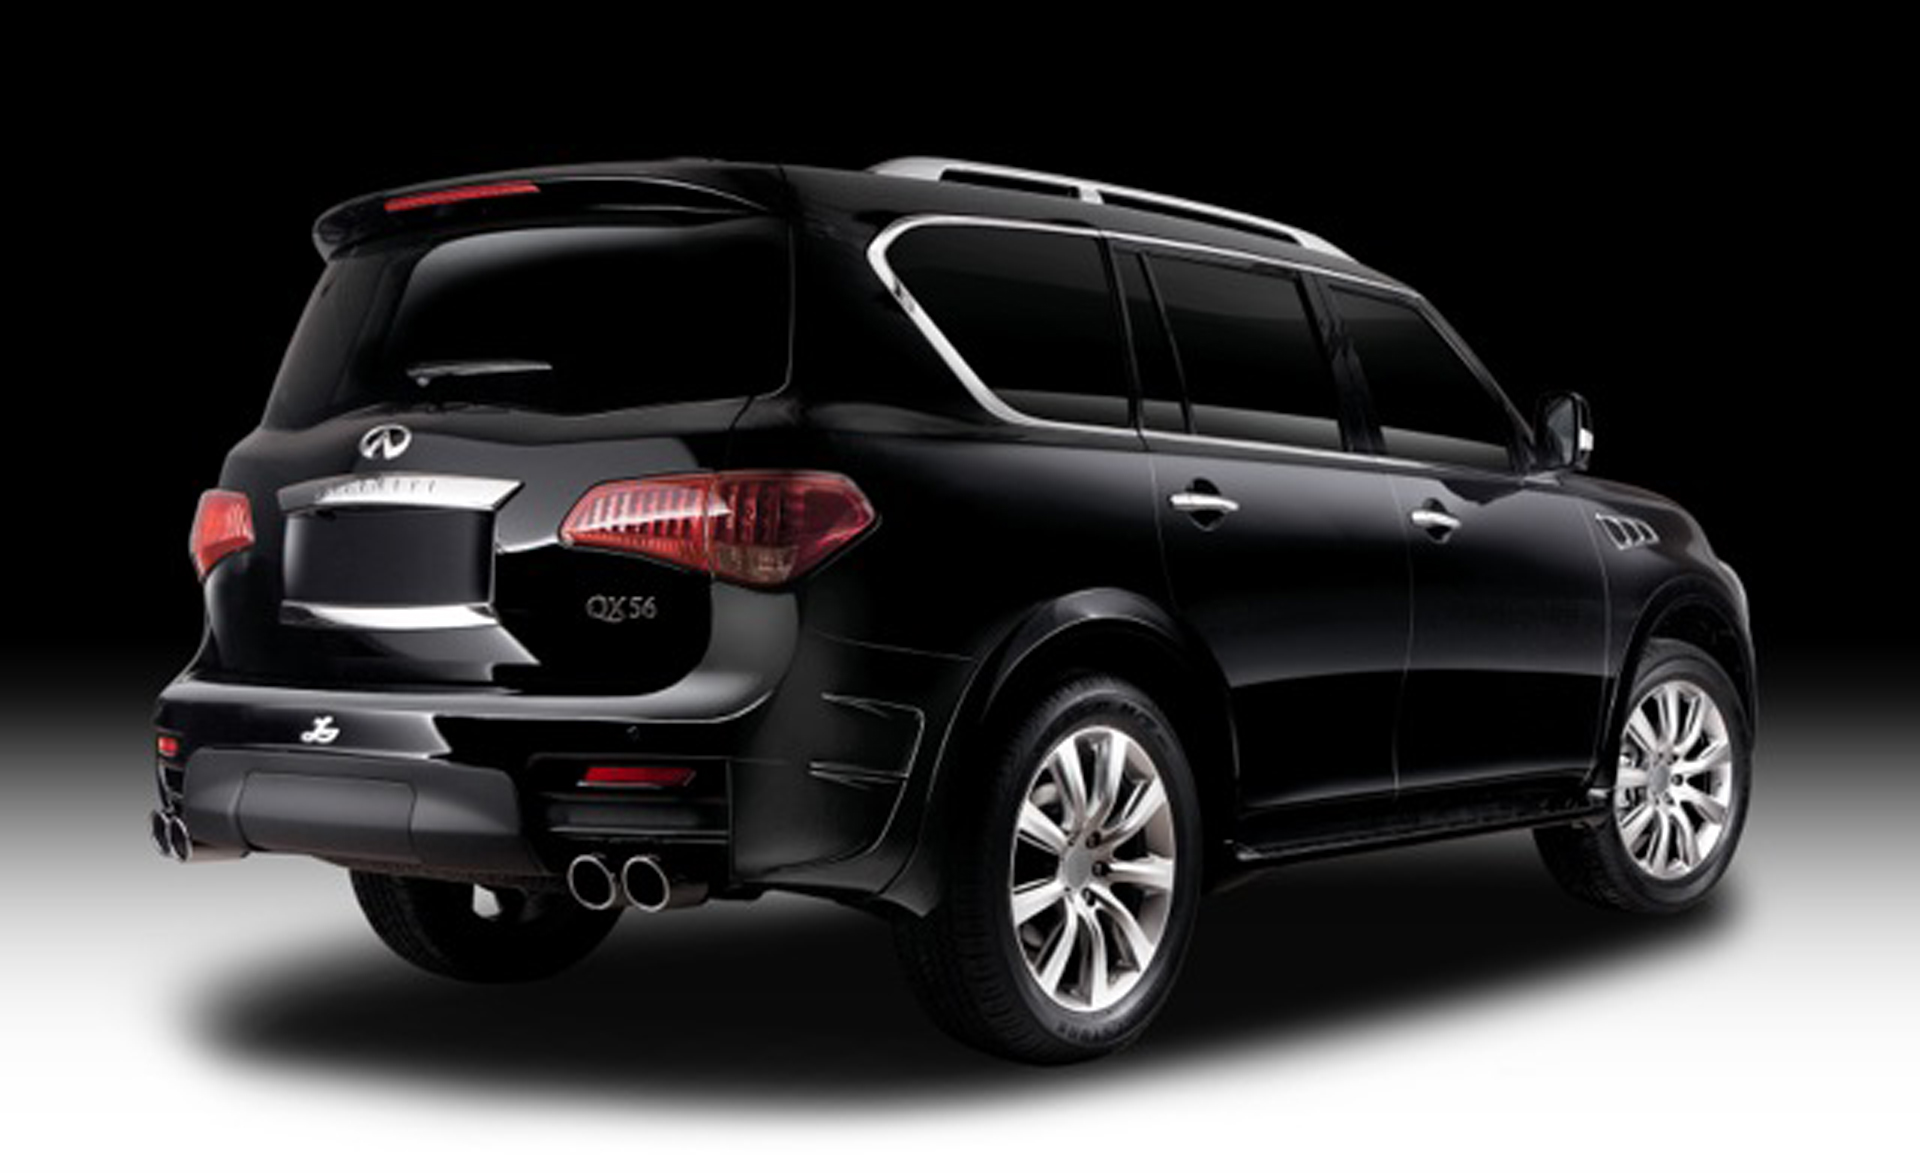 Mercedes Suv Models >> Infiniti QX80 Gets the Larte Design Treatment - autoevolution